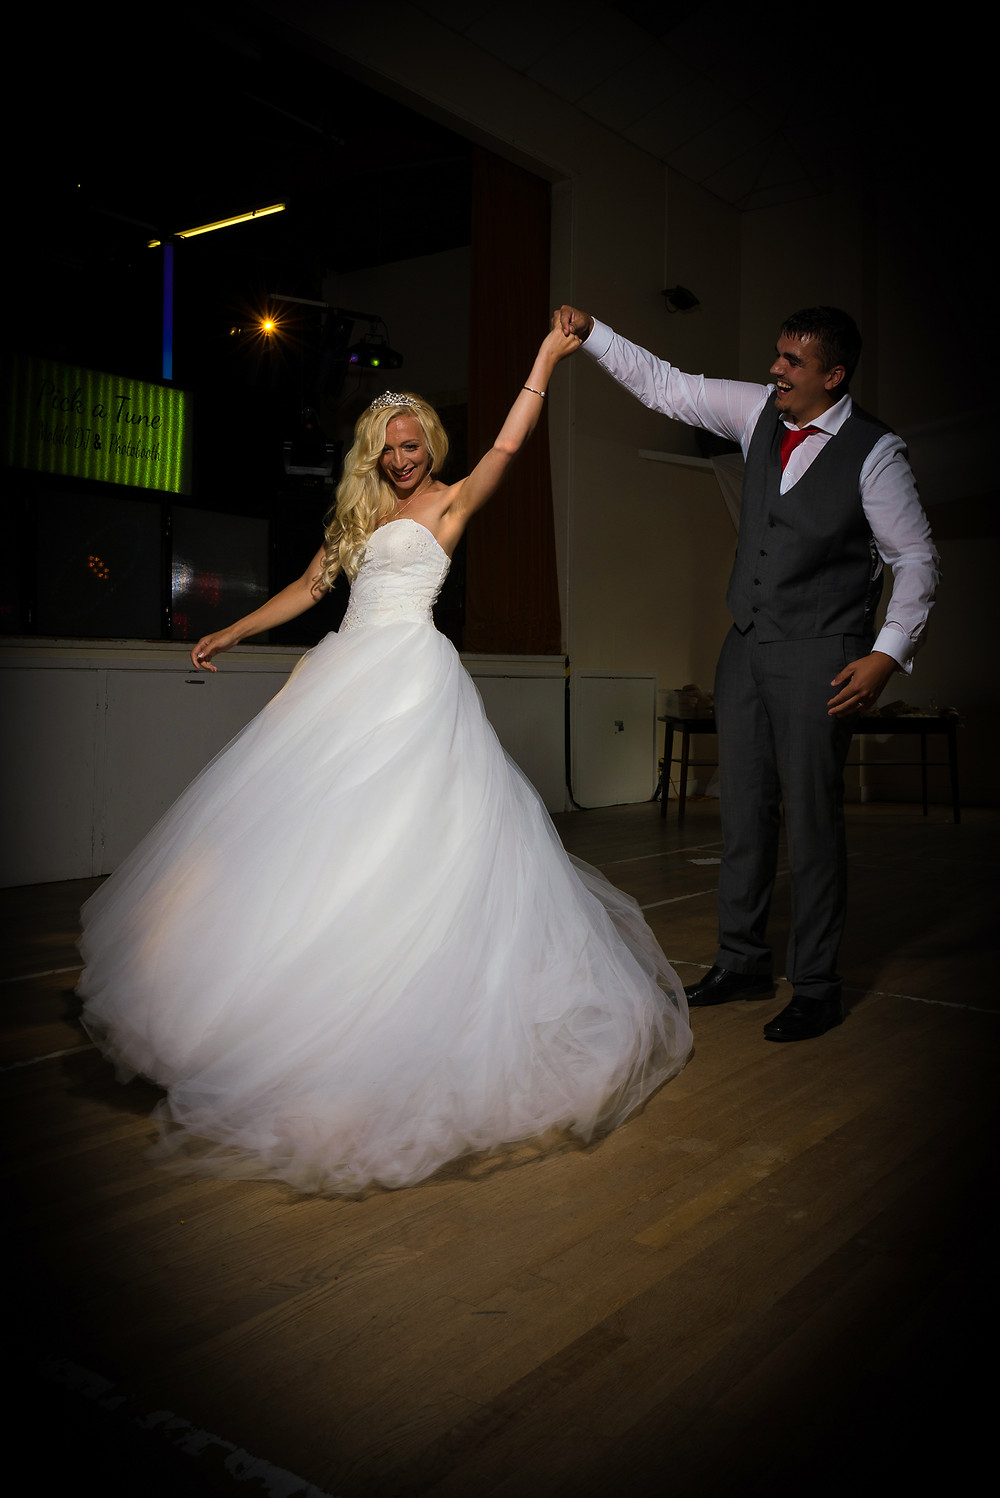 WEDDING PHOTOGRAPHER SOUTH WALES - FIRST DANCE